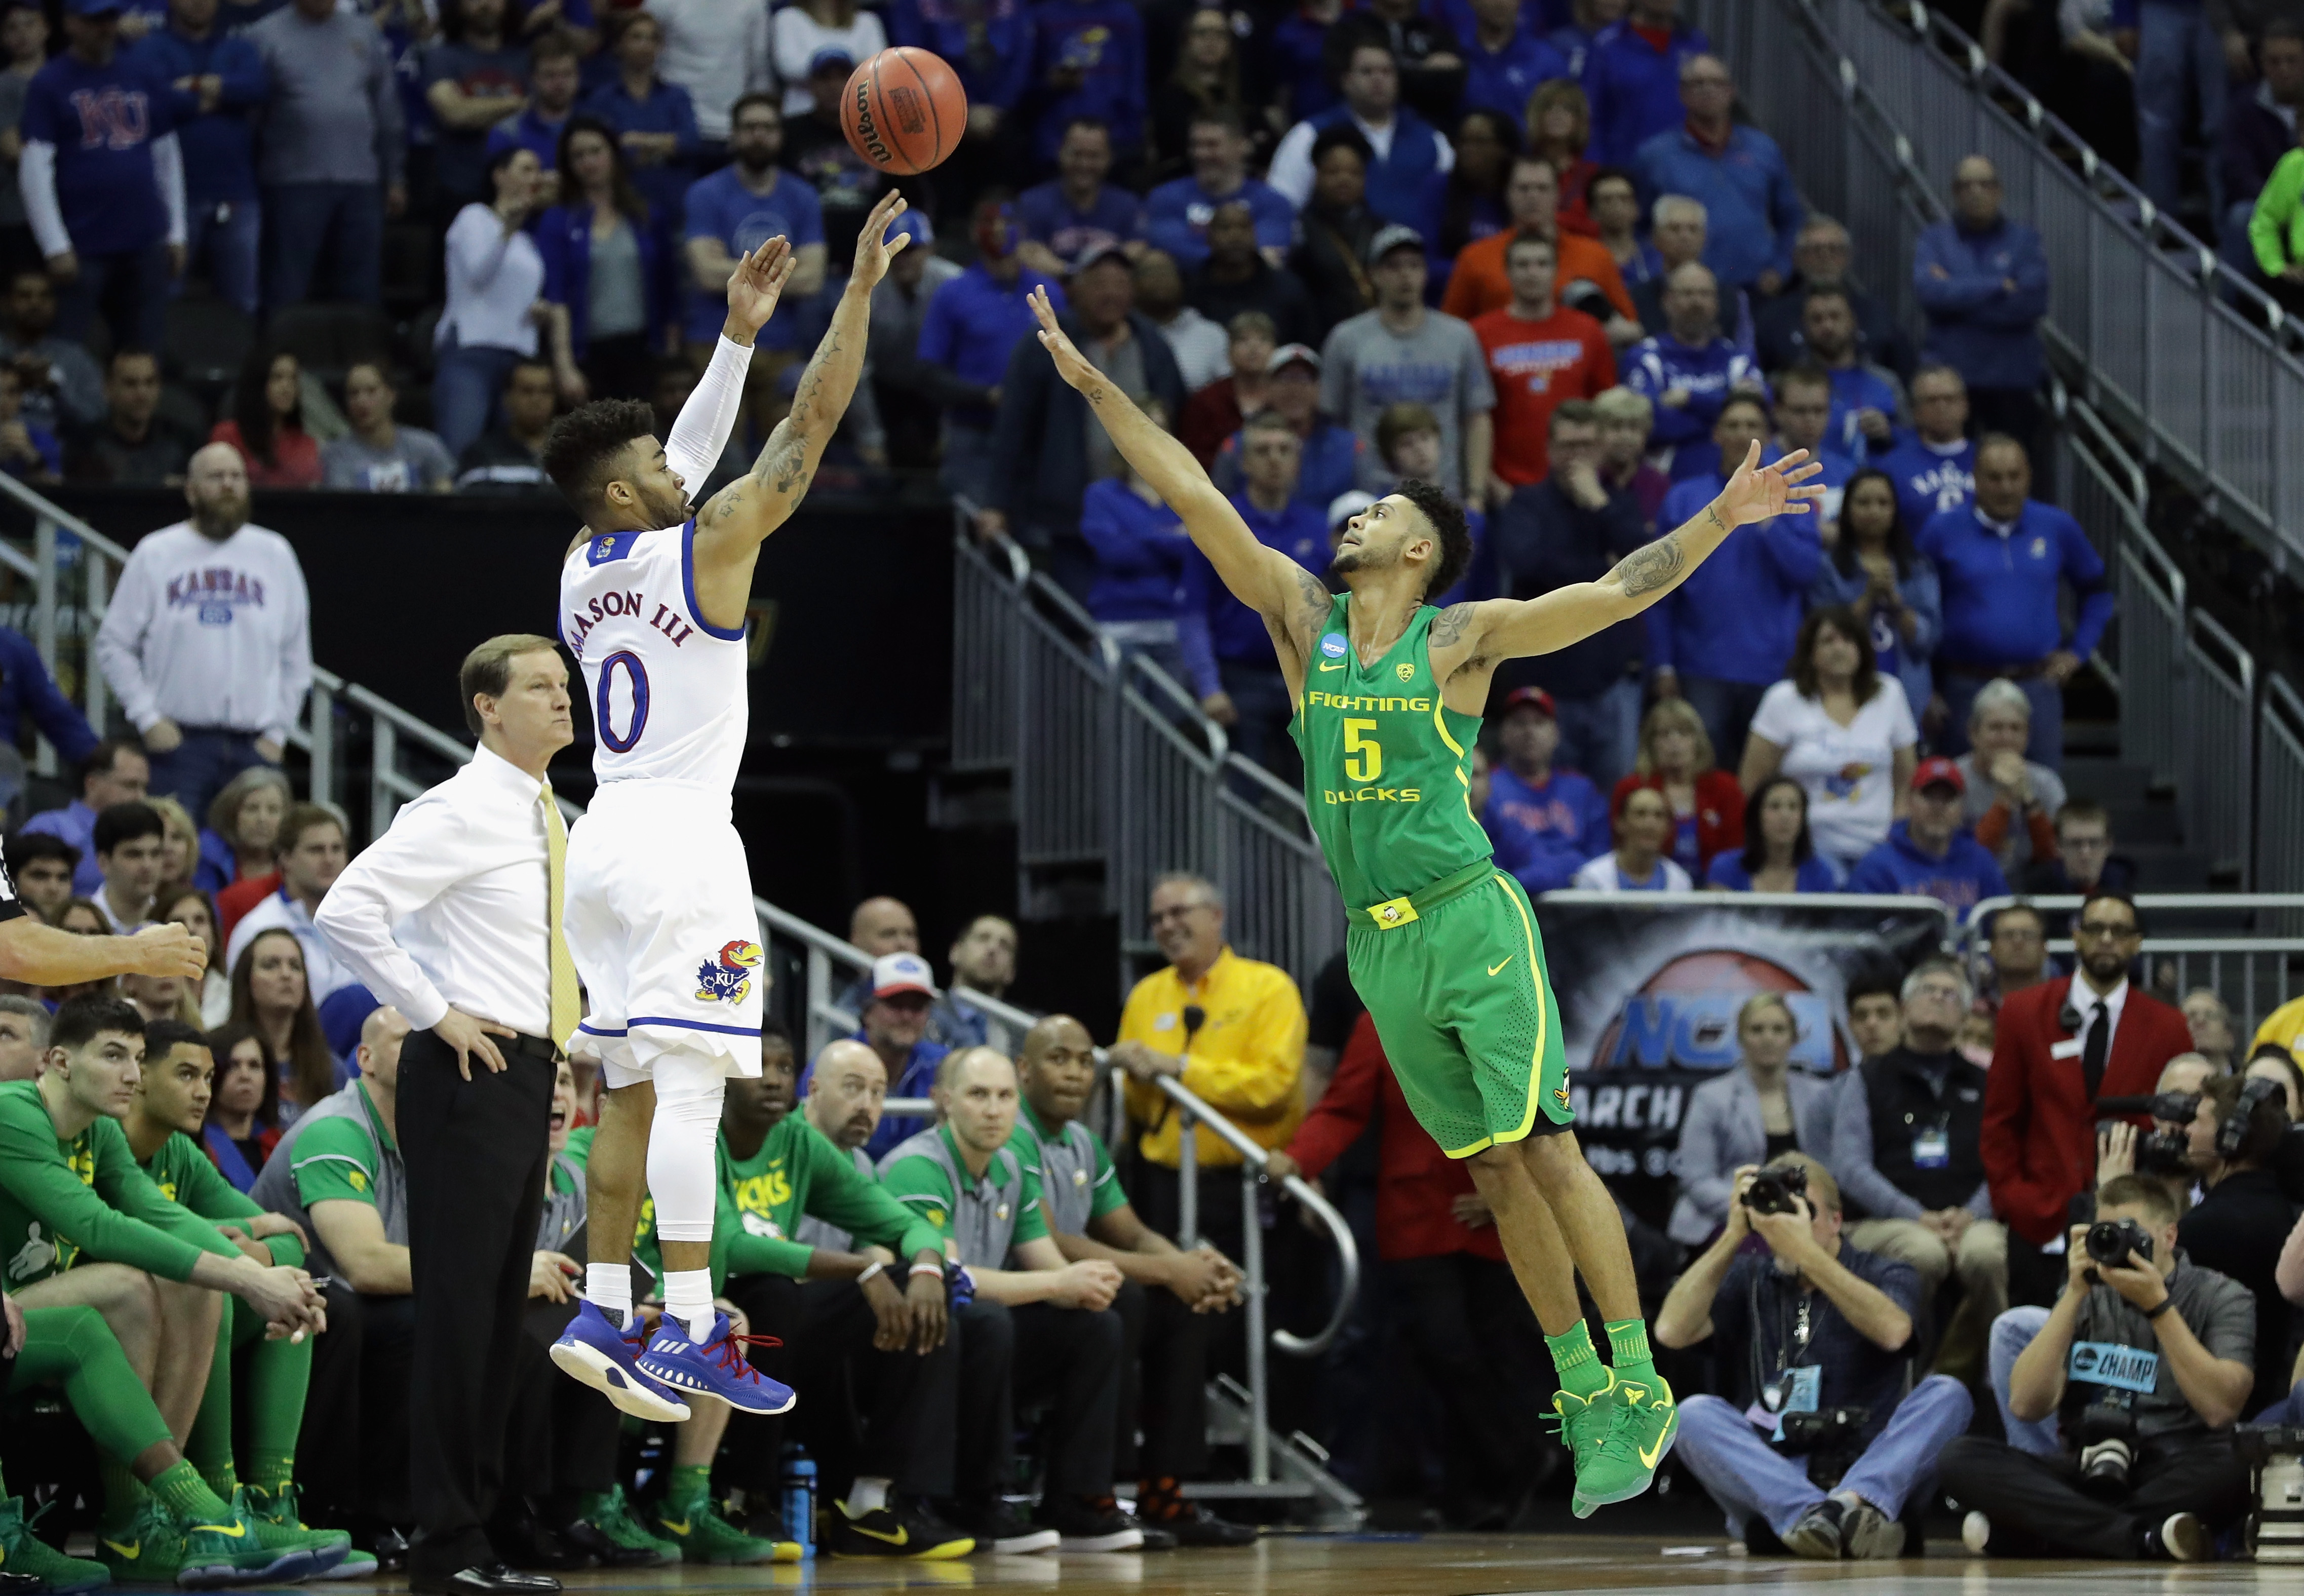 Mason III shoots the ball against Tyler Dorsey in the first half during the 2017 NCAA Men's Basketball Tournament Midwest Regional.